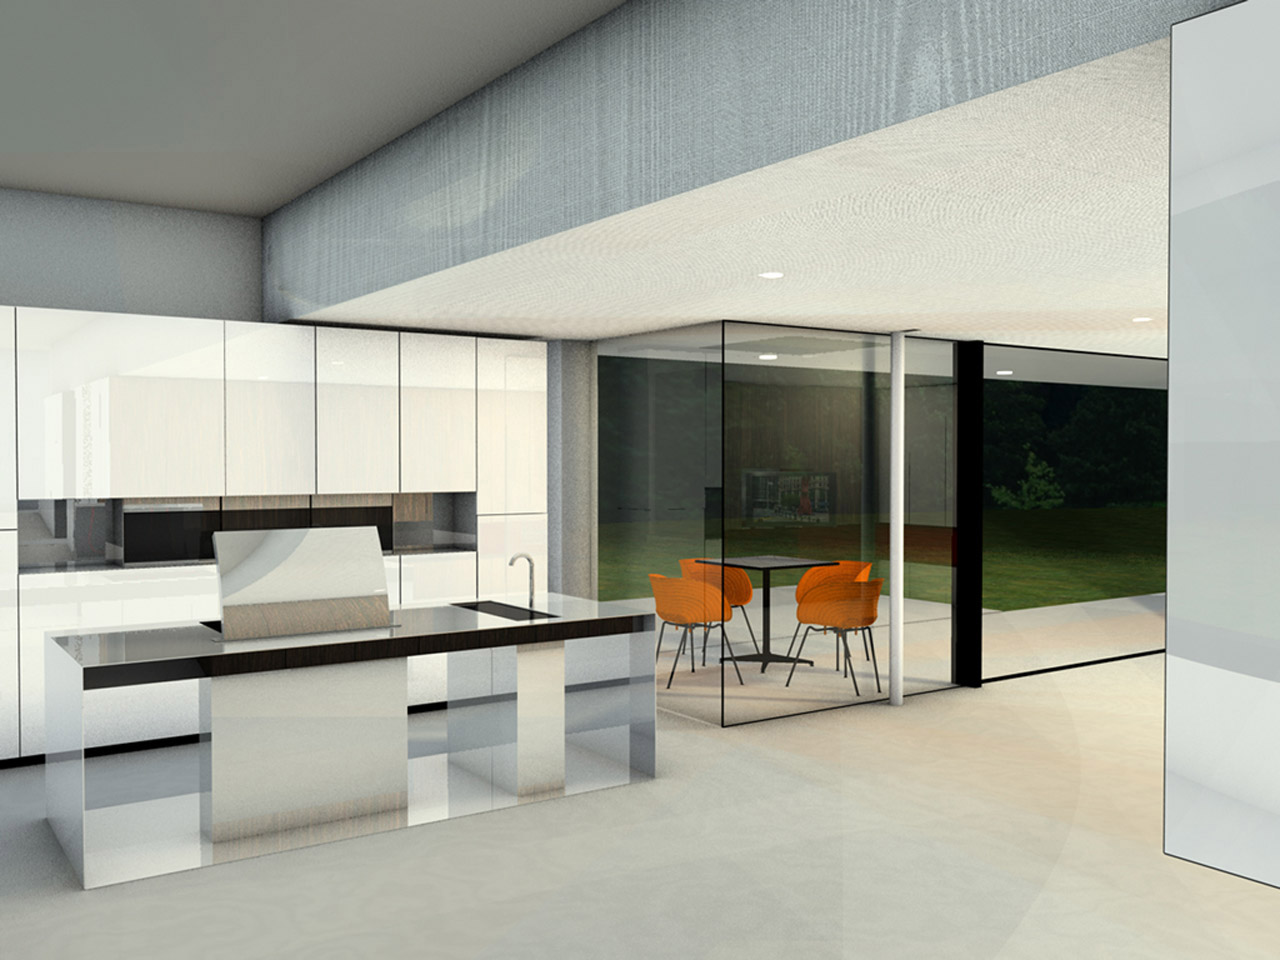 The design for the open-plan kitchen with cooking island, made entirely of stainless steel